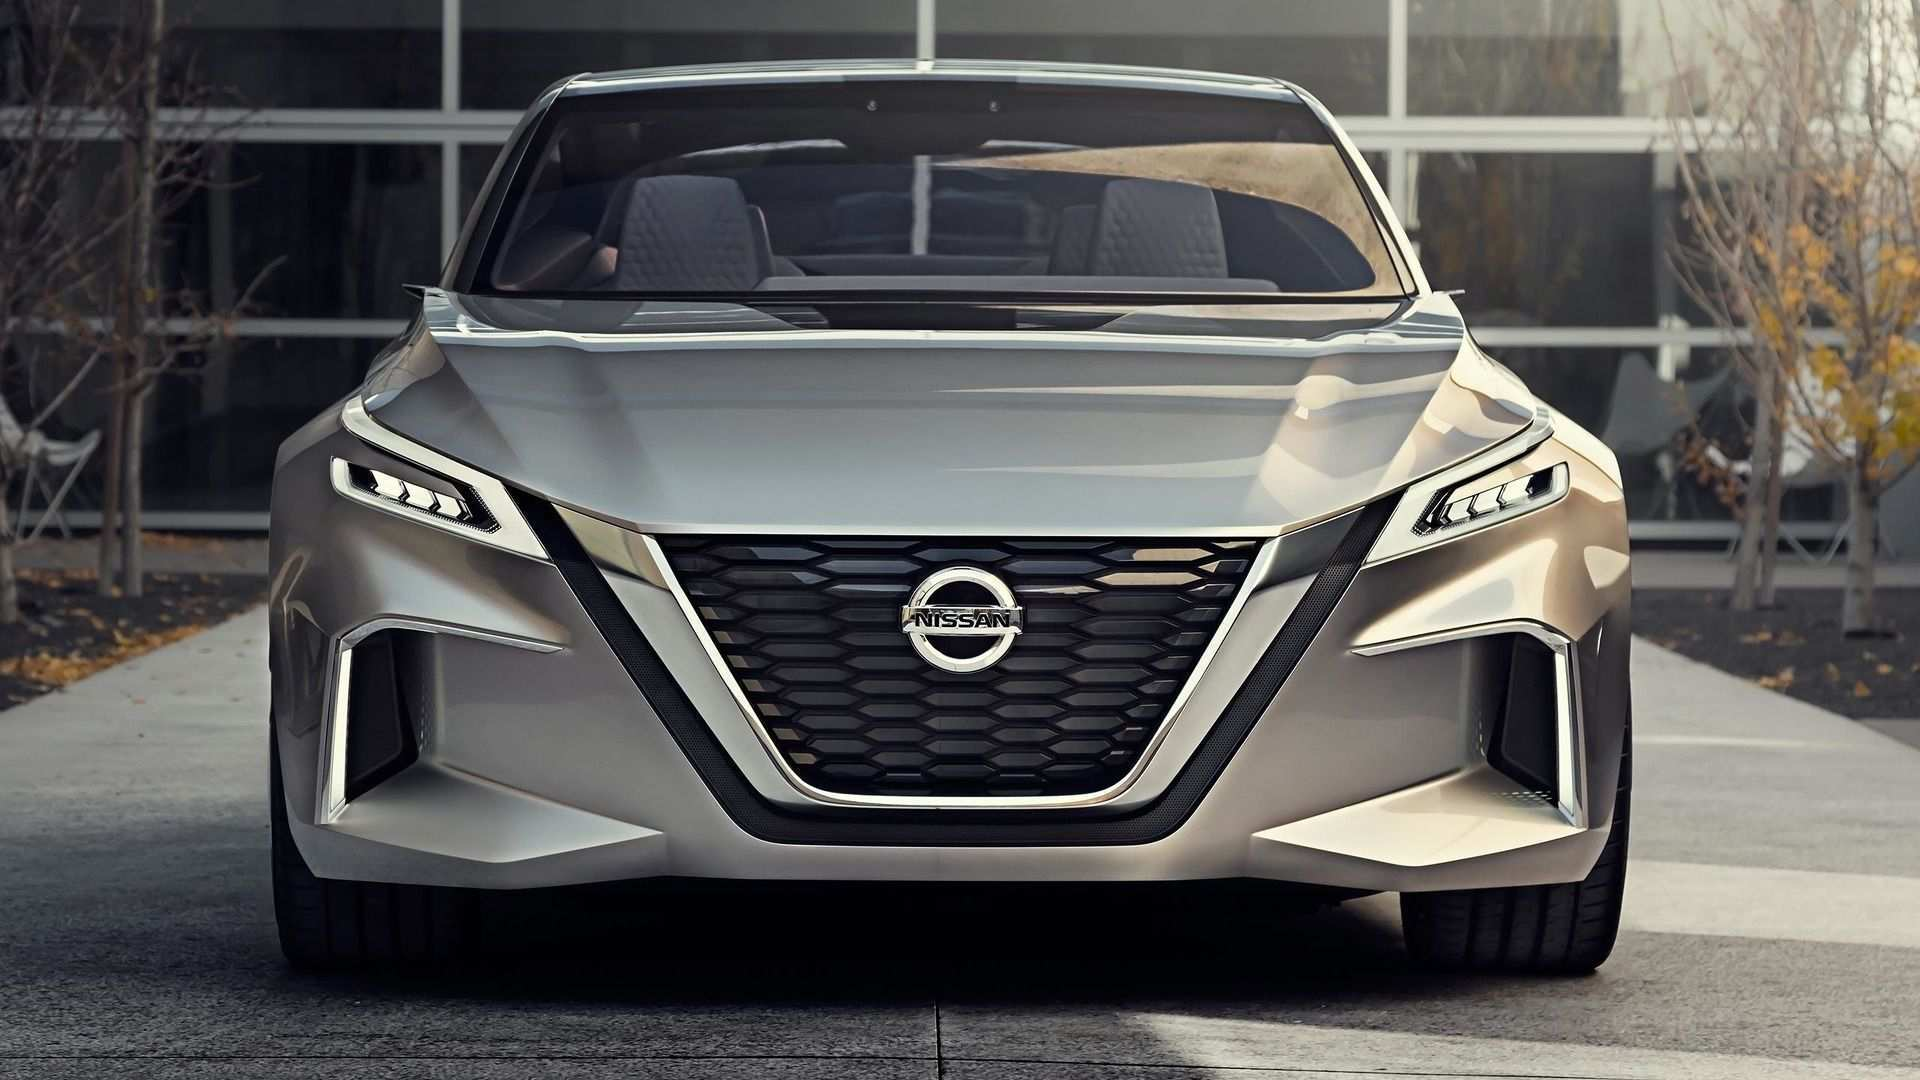 72 Great Nissan 2019 Malaysia Rumors for Nissan 2019 Malaysia